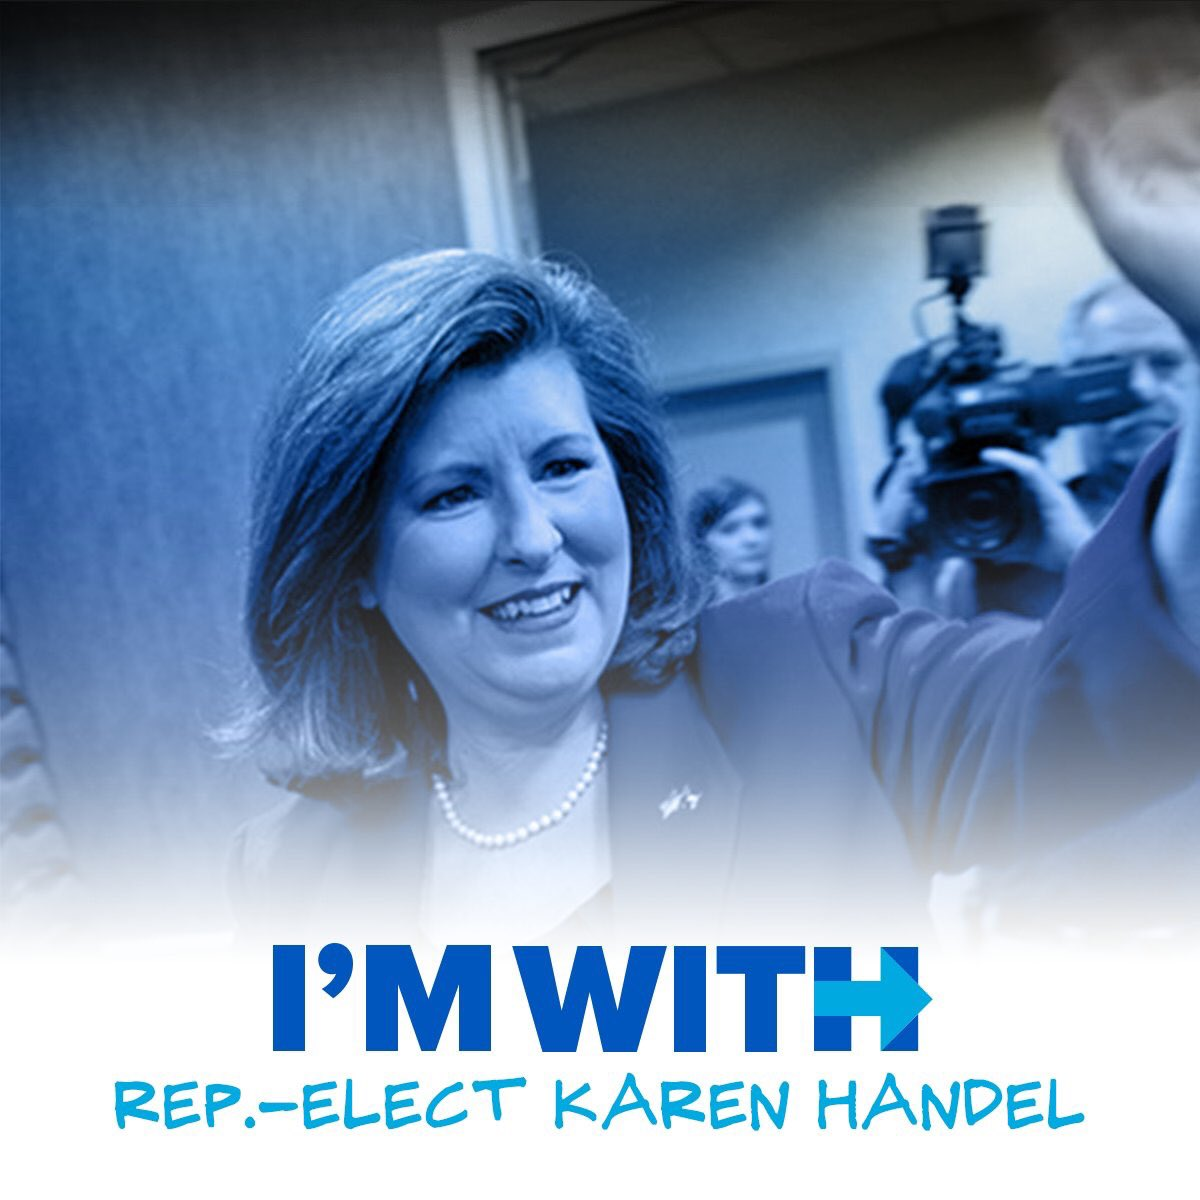 Congratulations, @karenhandel! #ImWithHer (&amp; thousands of other strong conservative females today and every day) <br>http://pic.twitter.com/sUOT9j7ZSq